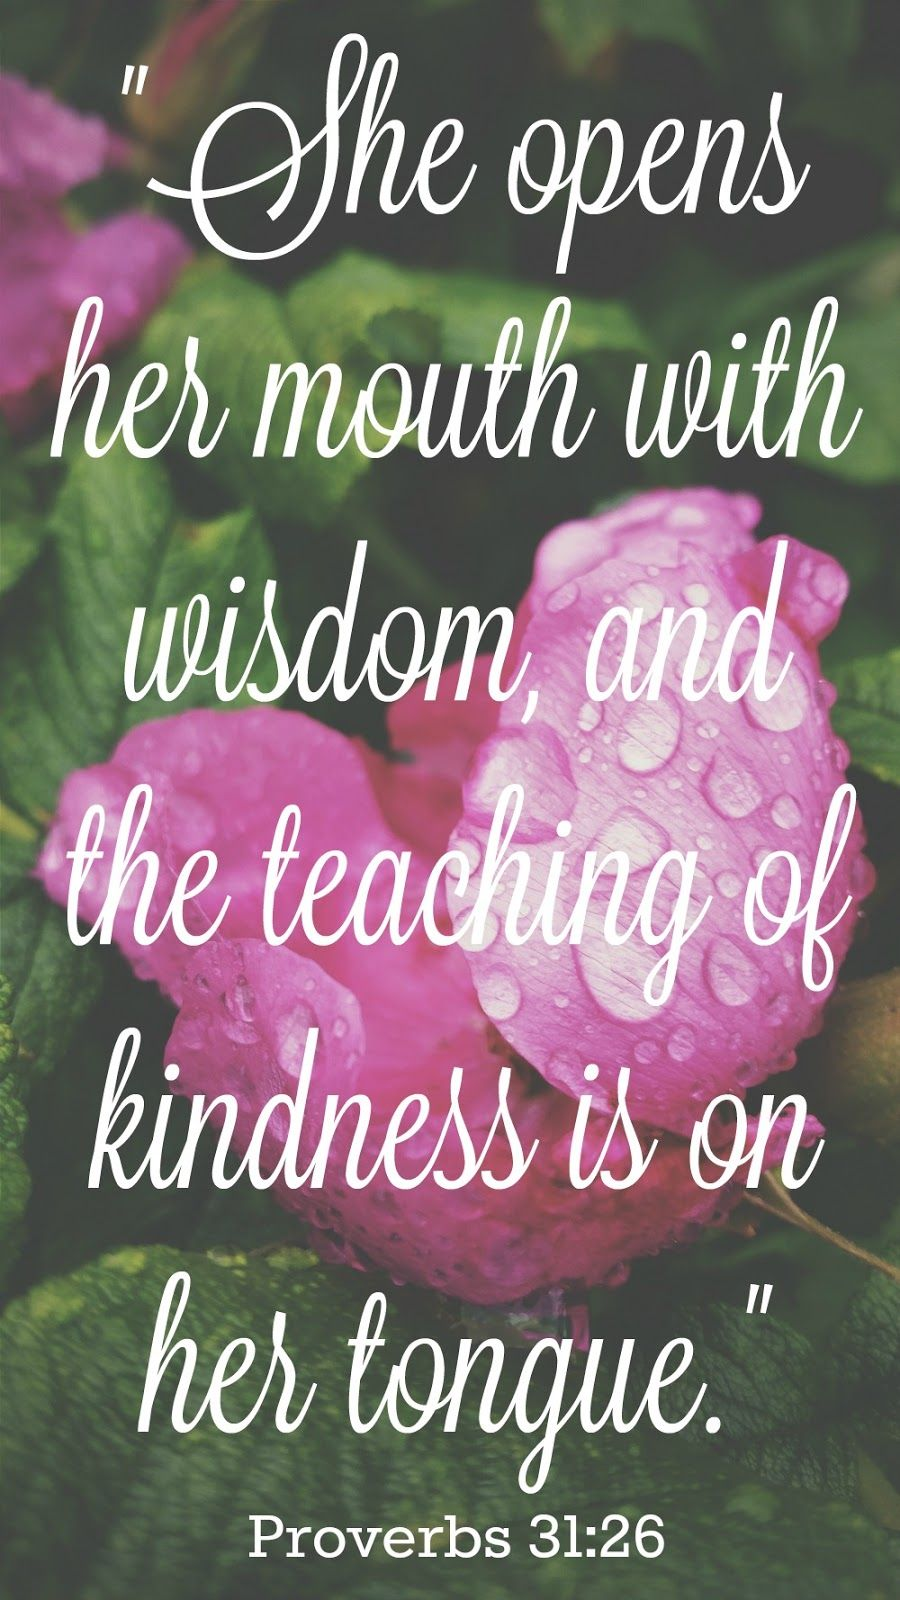 One Word for 2016 Kindness Bible verses about mothers